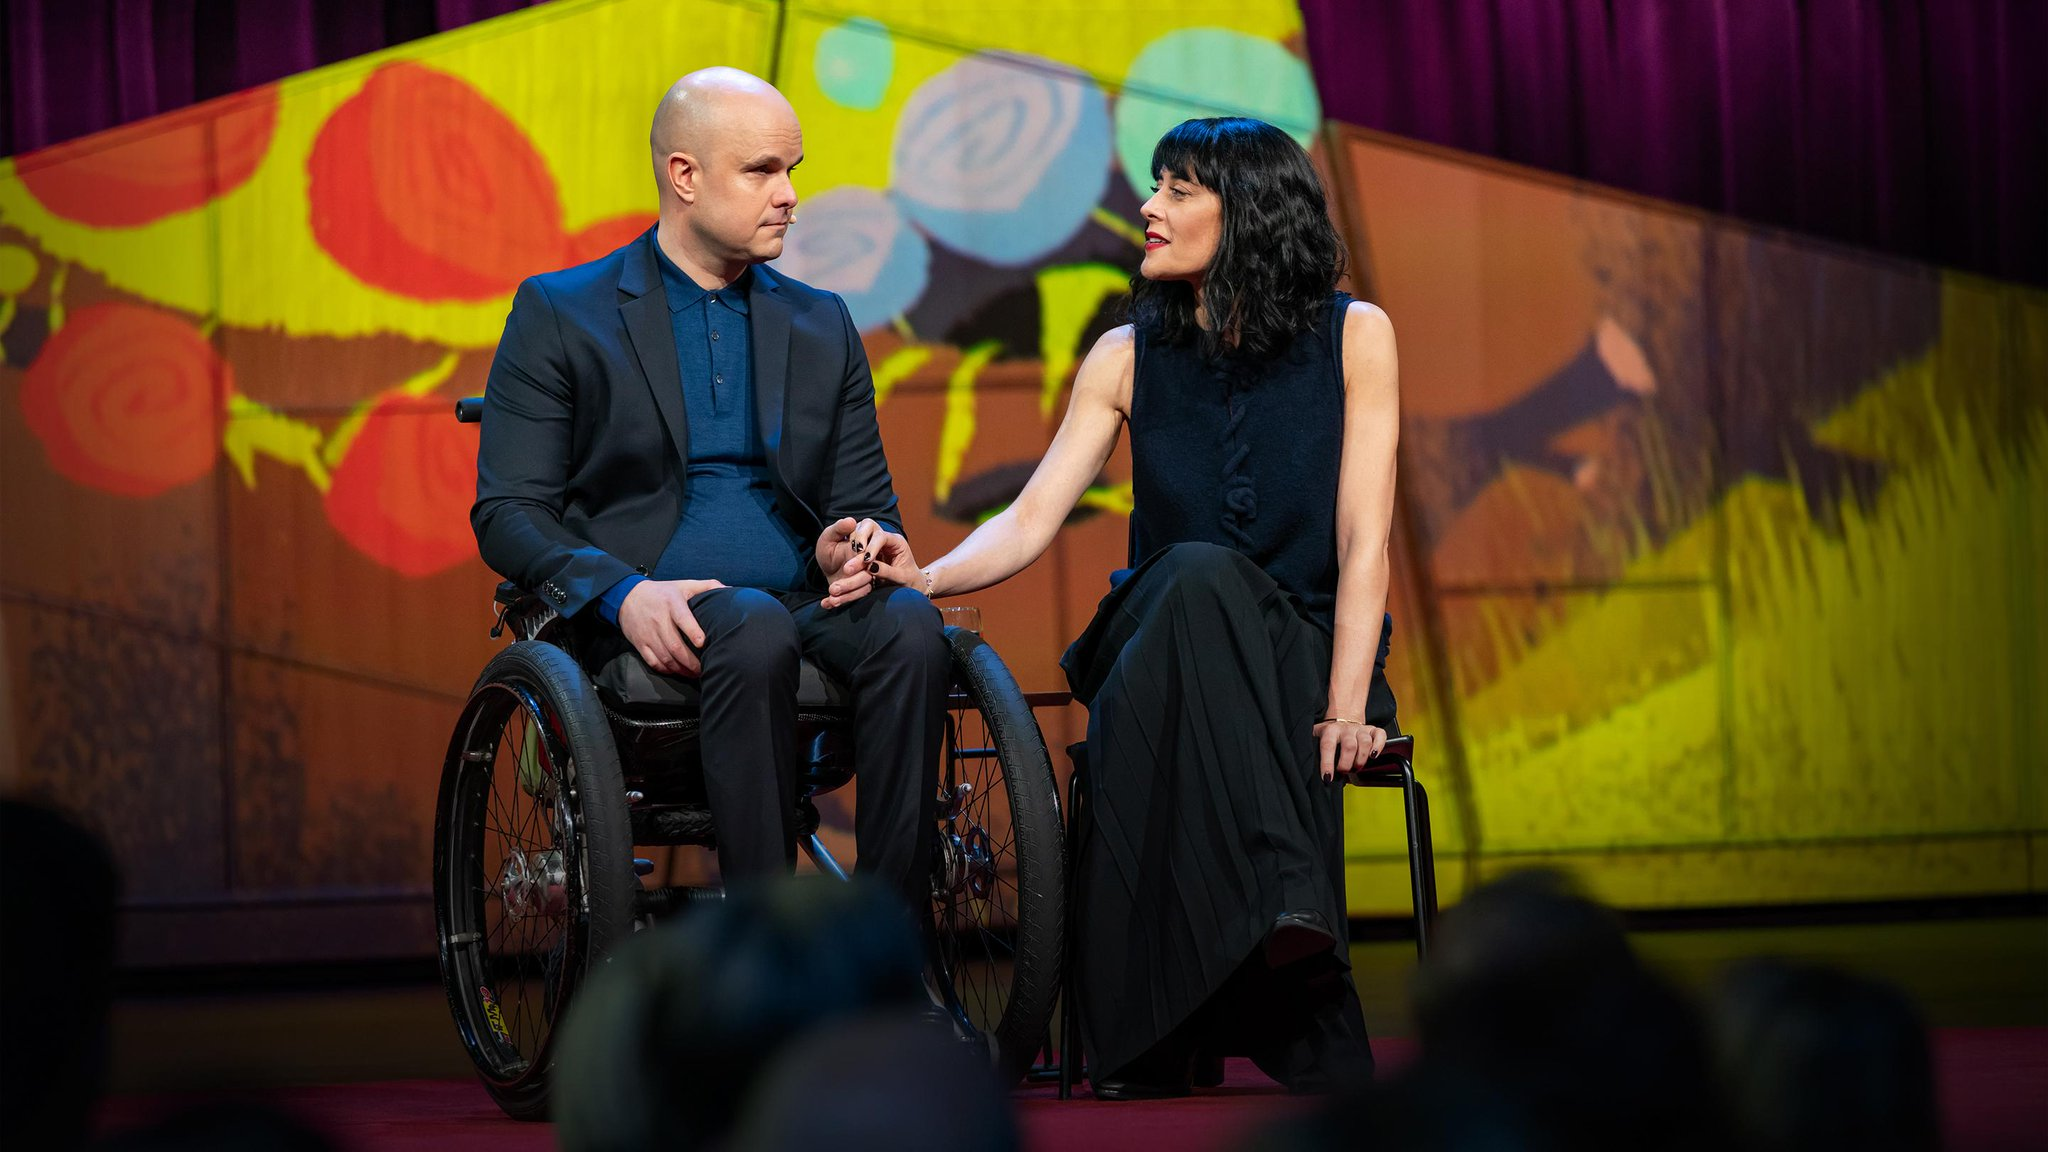 A love letter to realism in a time of grief: https://t.co/BlFDr6OUZ3 @markpollock @TweetsbySimone https://t.co/rkYue1gCRA